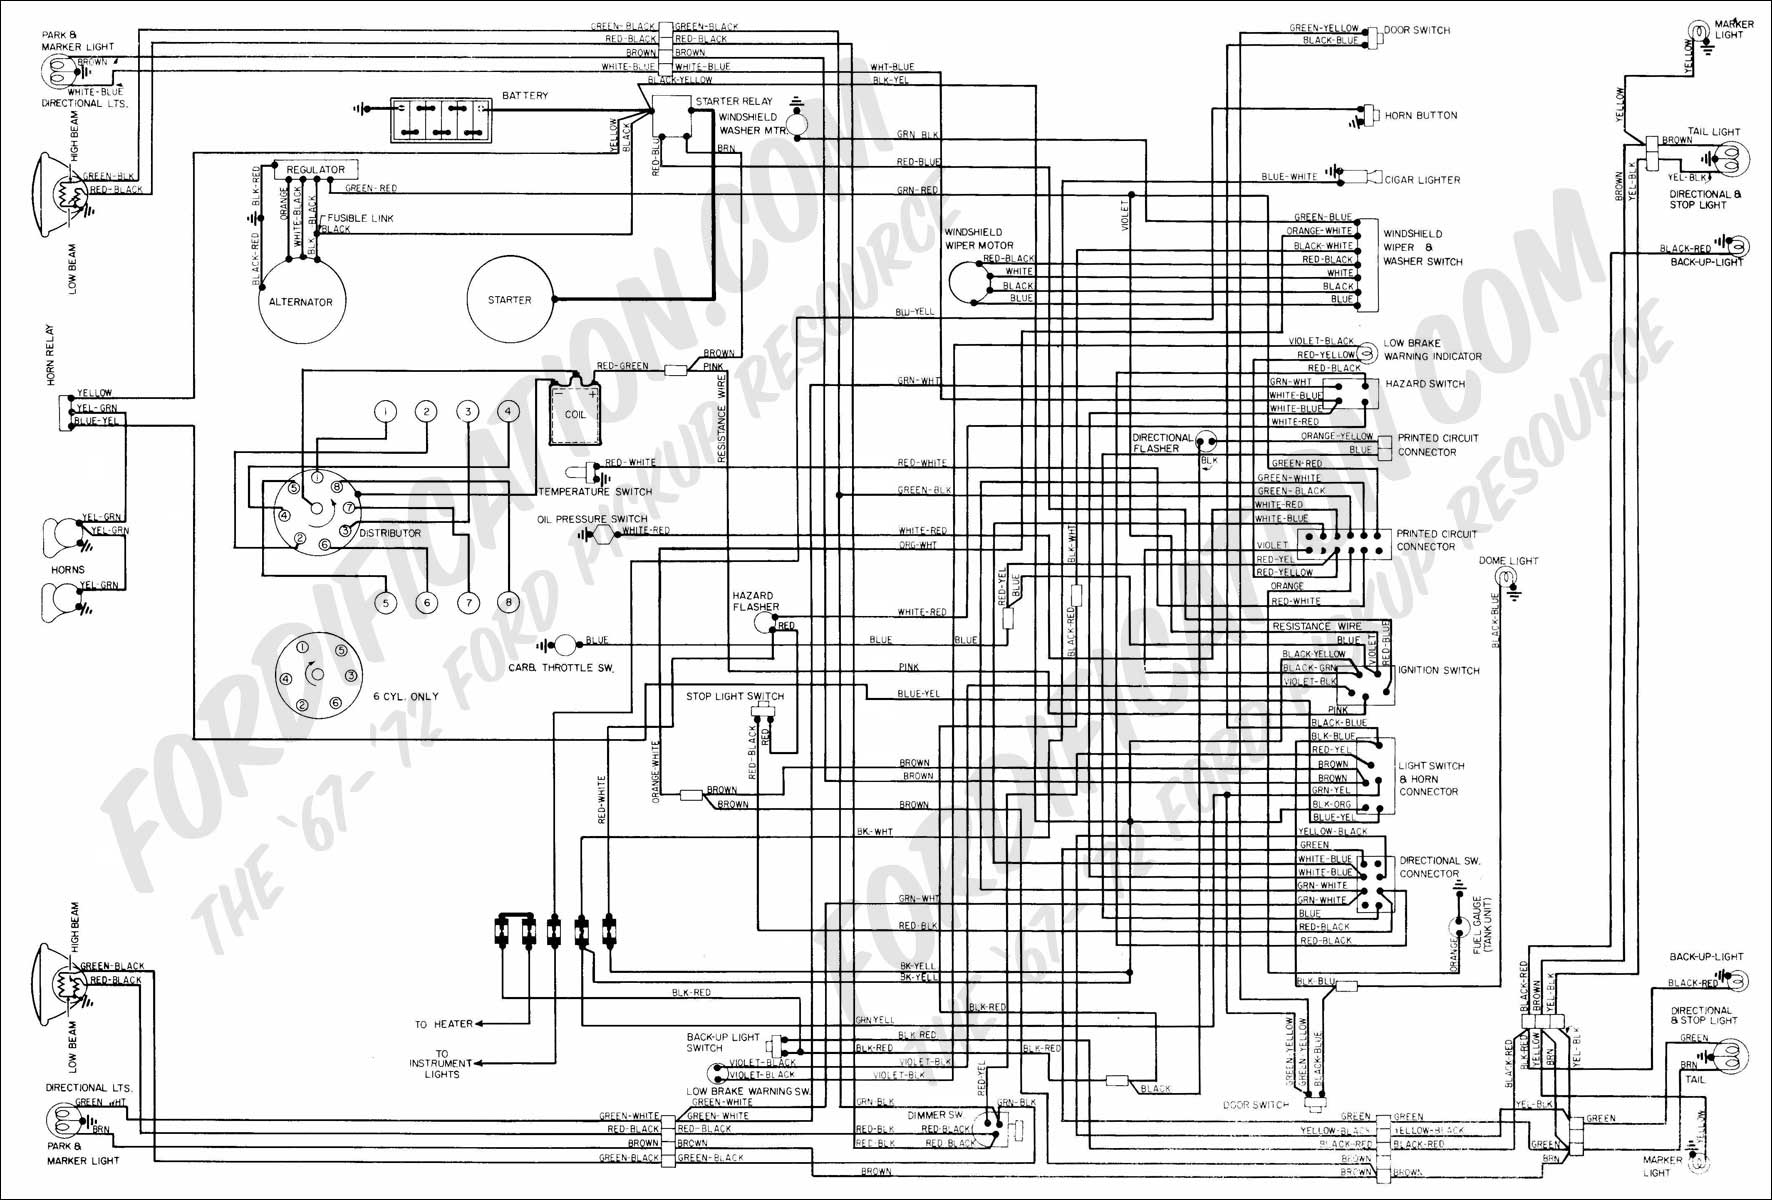 1990 ford e250 wiring diagram ford van wiring diagram ford wiring diagrams